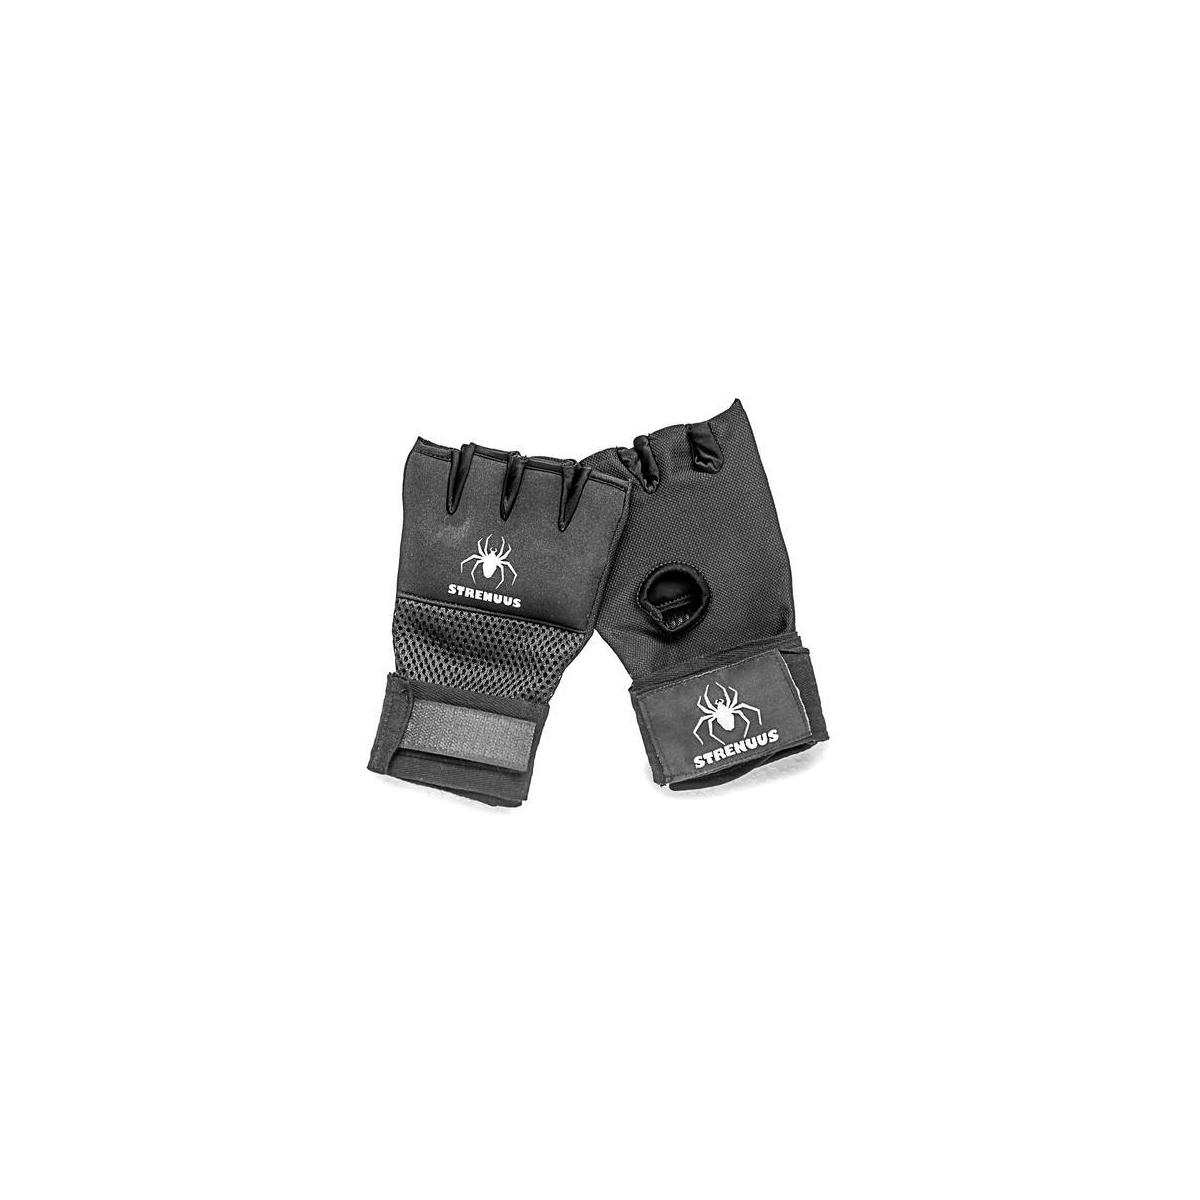 Strenuus Quick-Apply Padded Wraps for Boxing Gloves; Boxing Wraps; Kickboxing Wraps; Lightning-Fast Wrapping; Non-Slip Padding; Quick-Drying Fabric; Buy Now and Get Ready Faster Than Your Friends